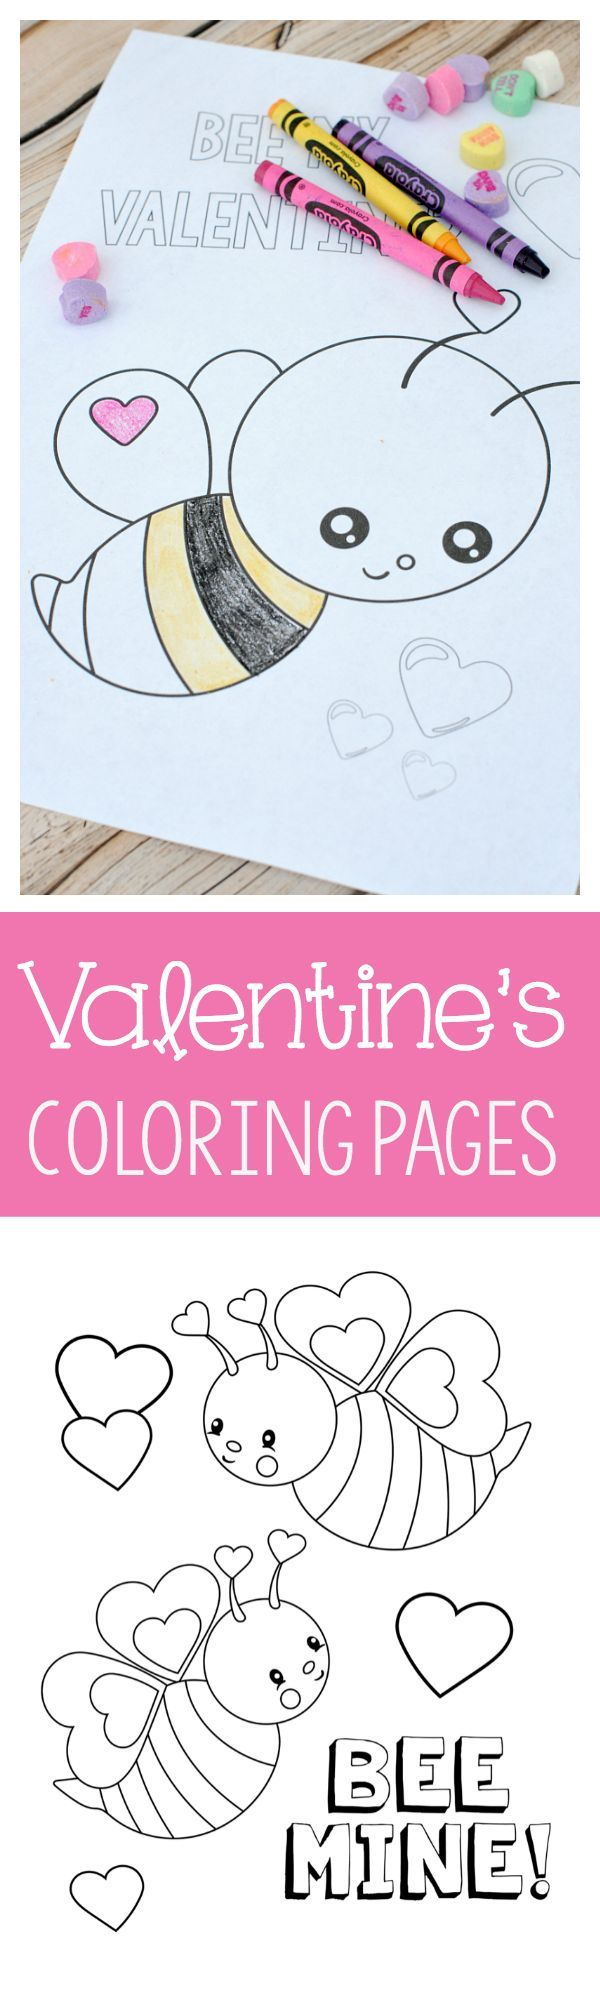 247 best Valentine\'s Day images on Pinterest | Birthdays, Candy and ...